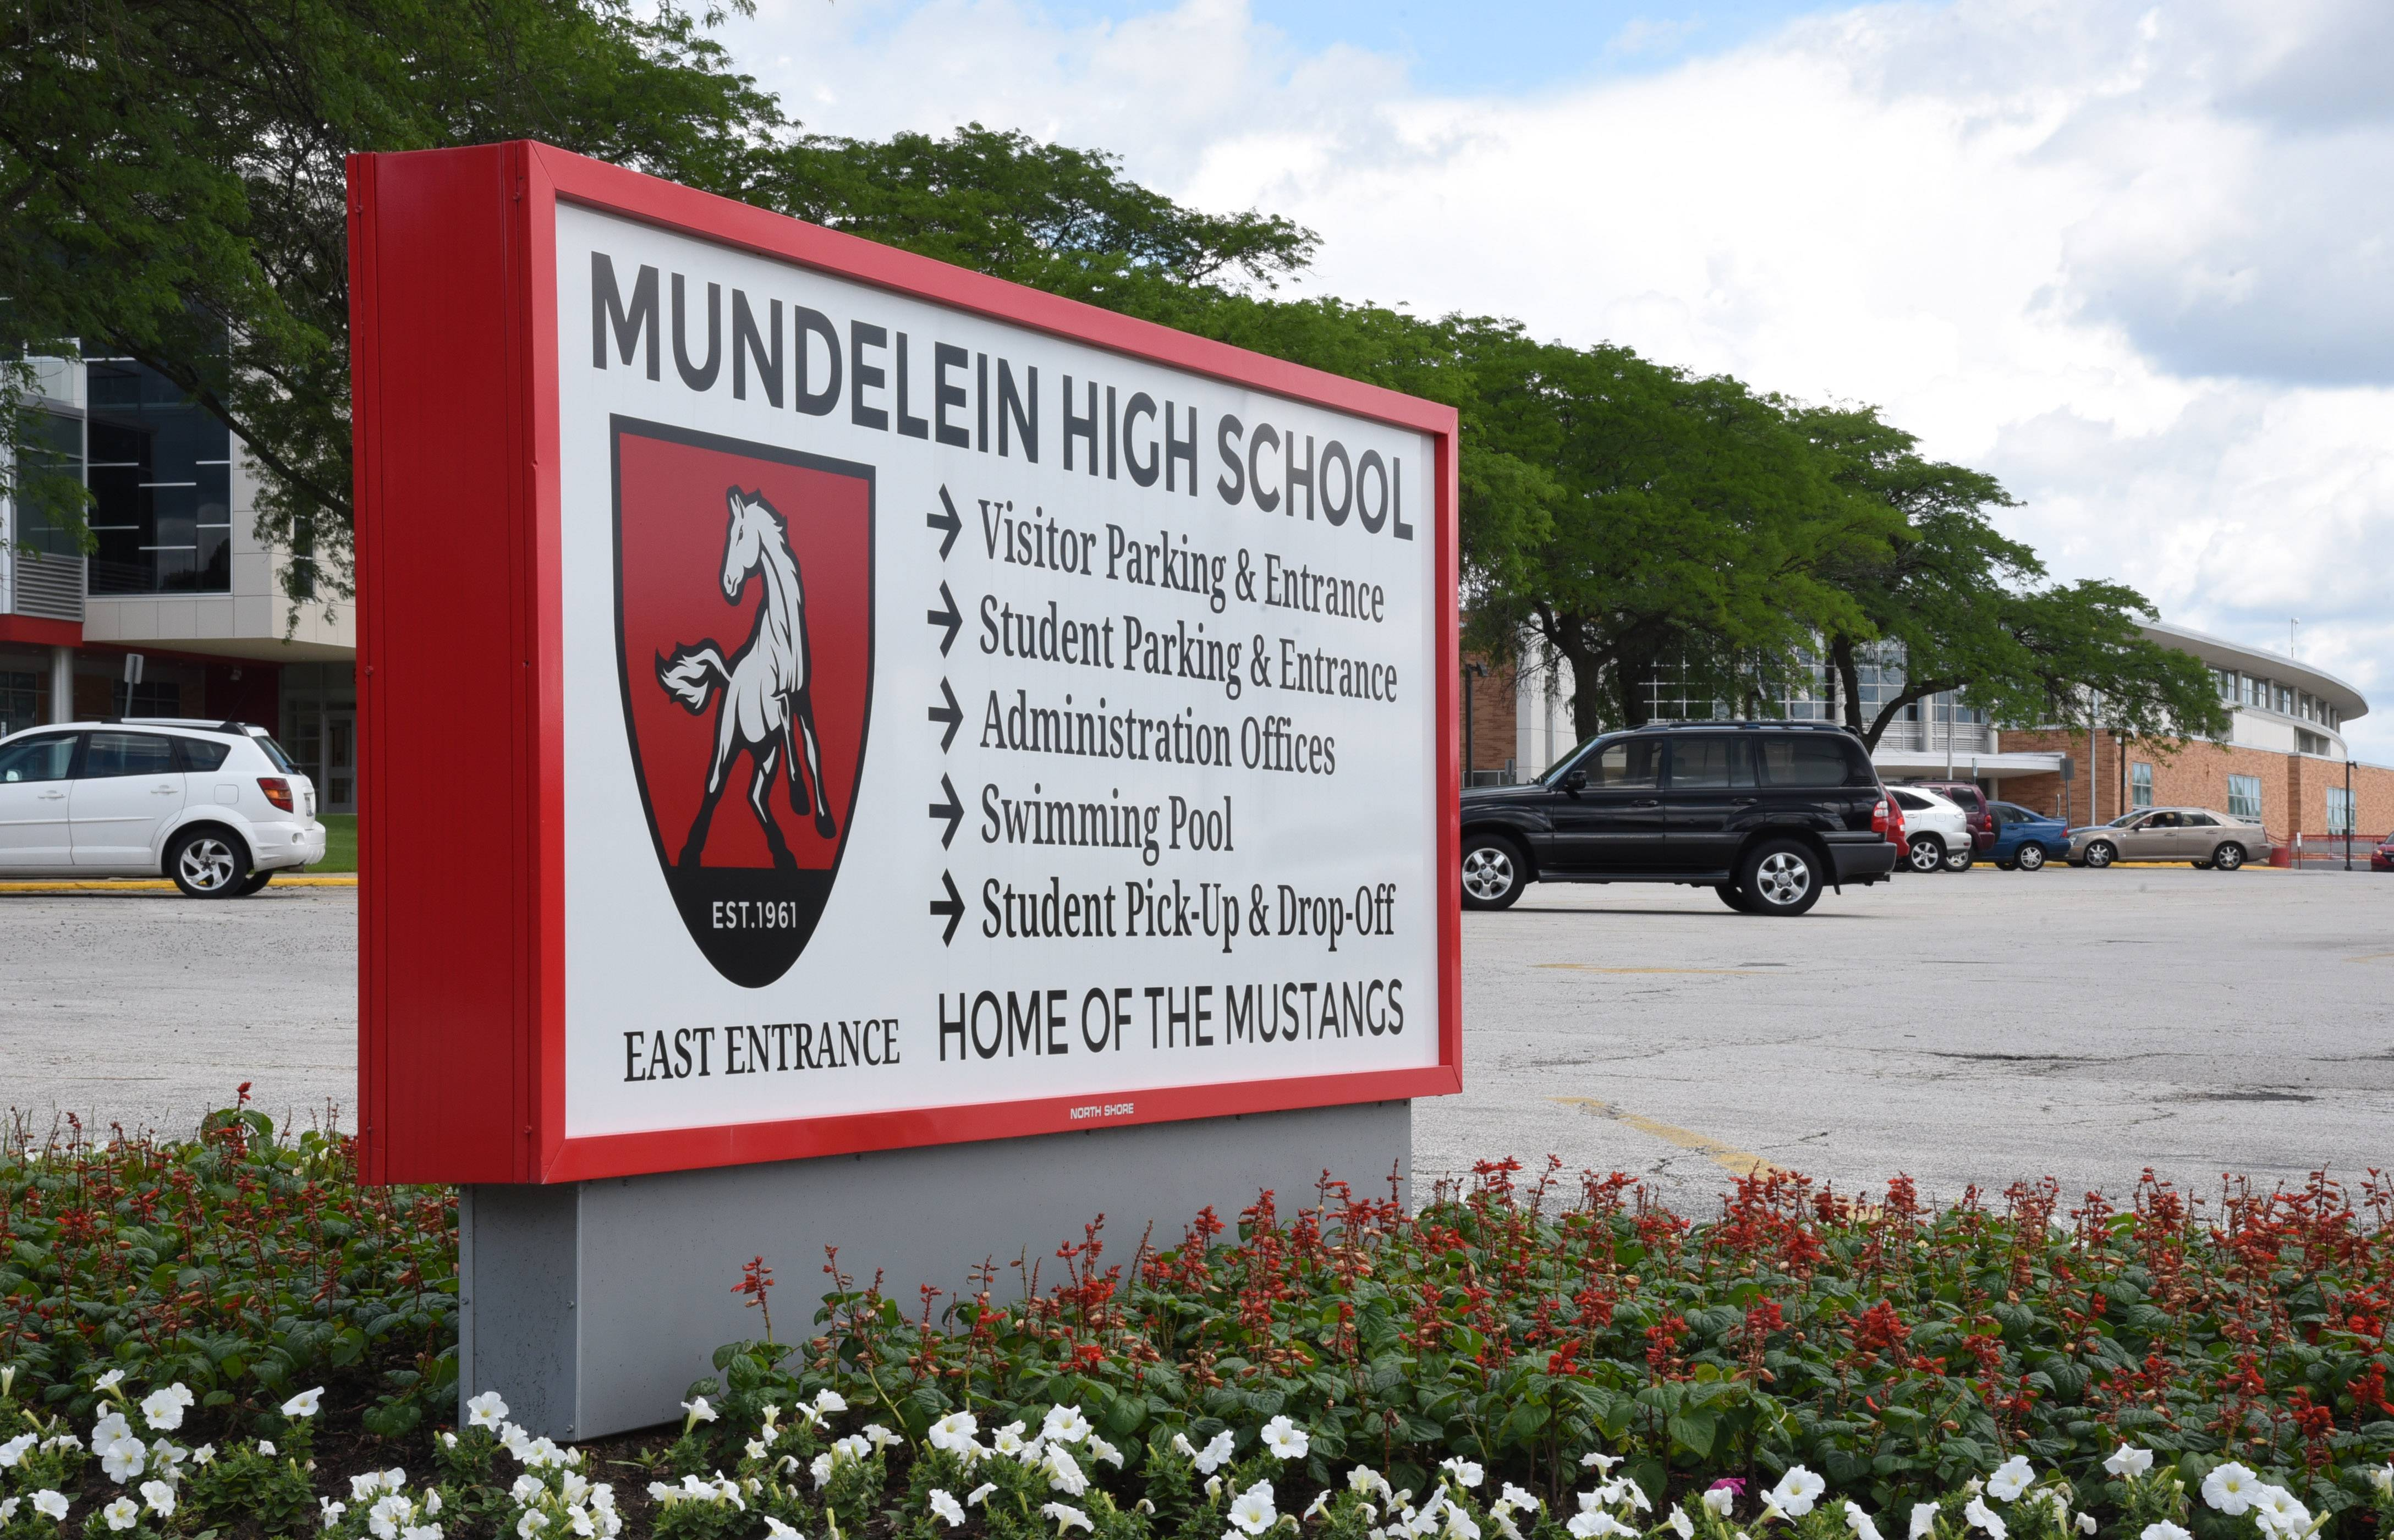 Two Mundelein High School students charged after social media post